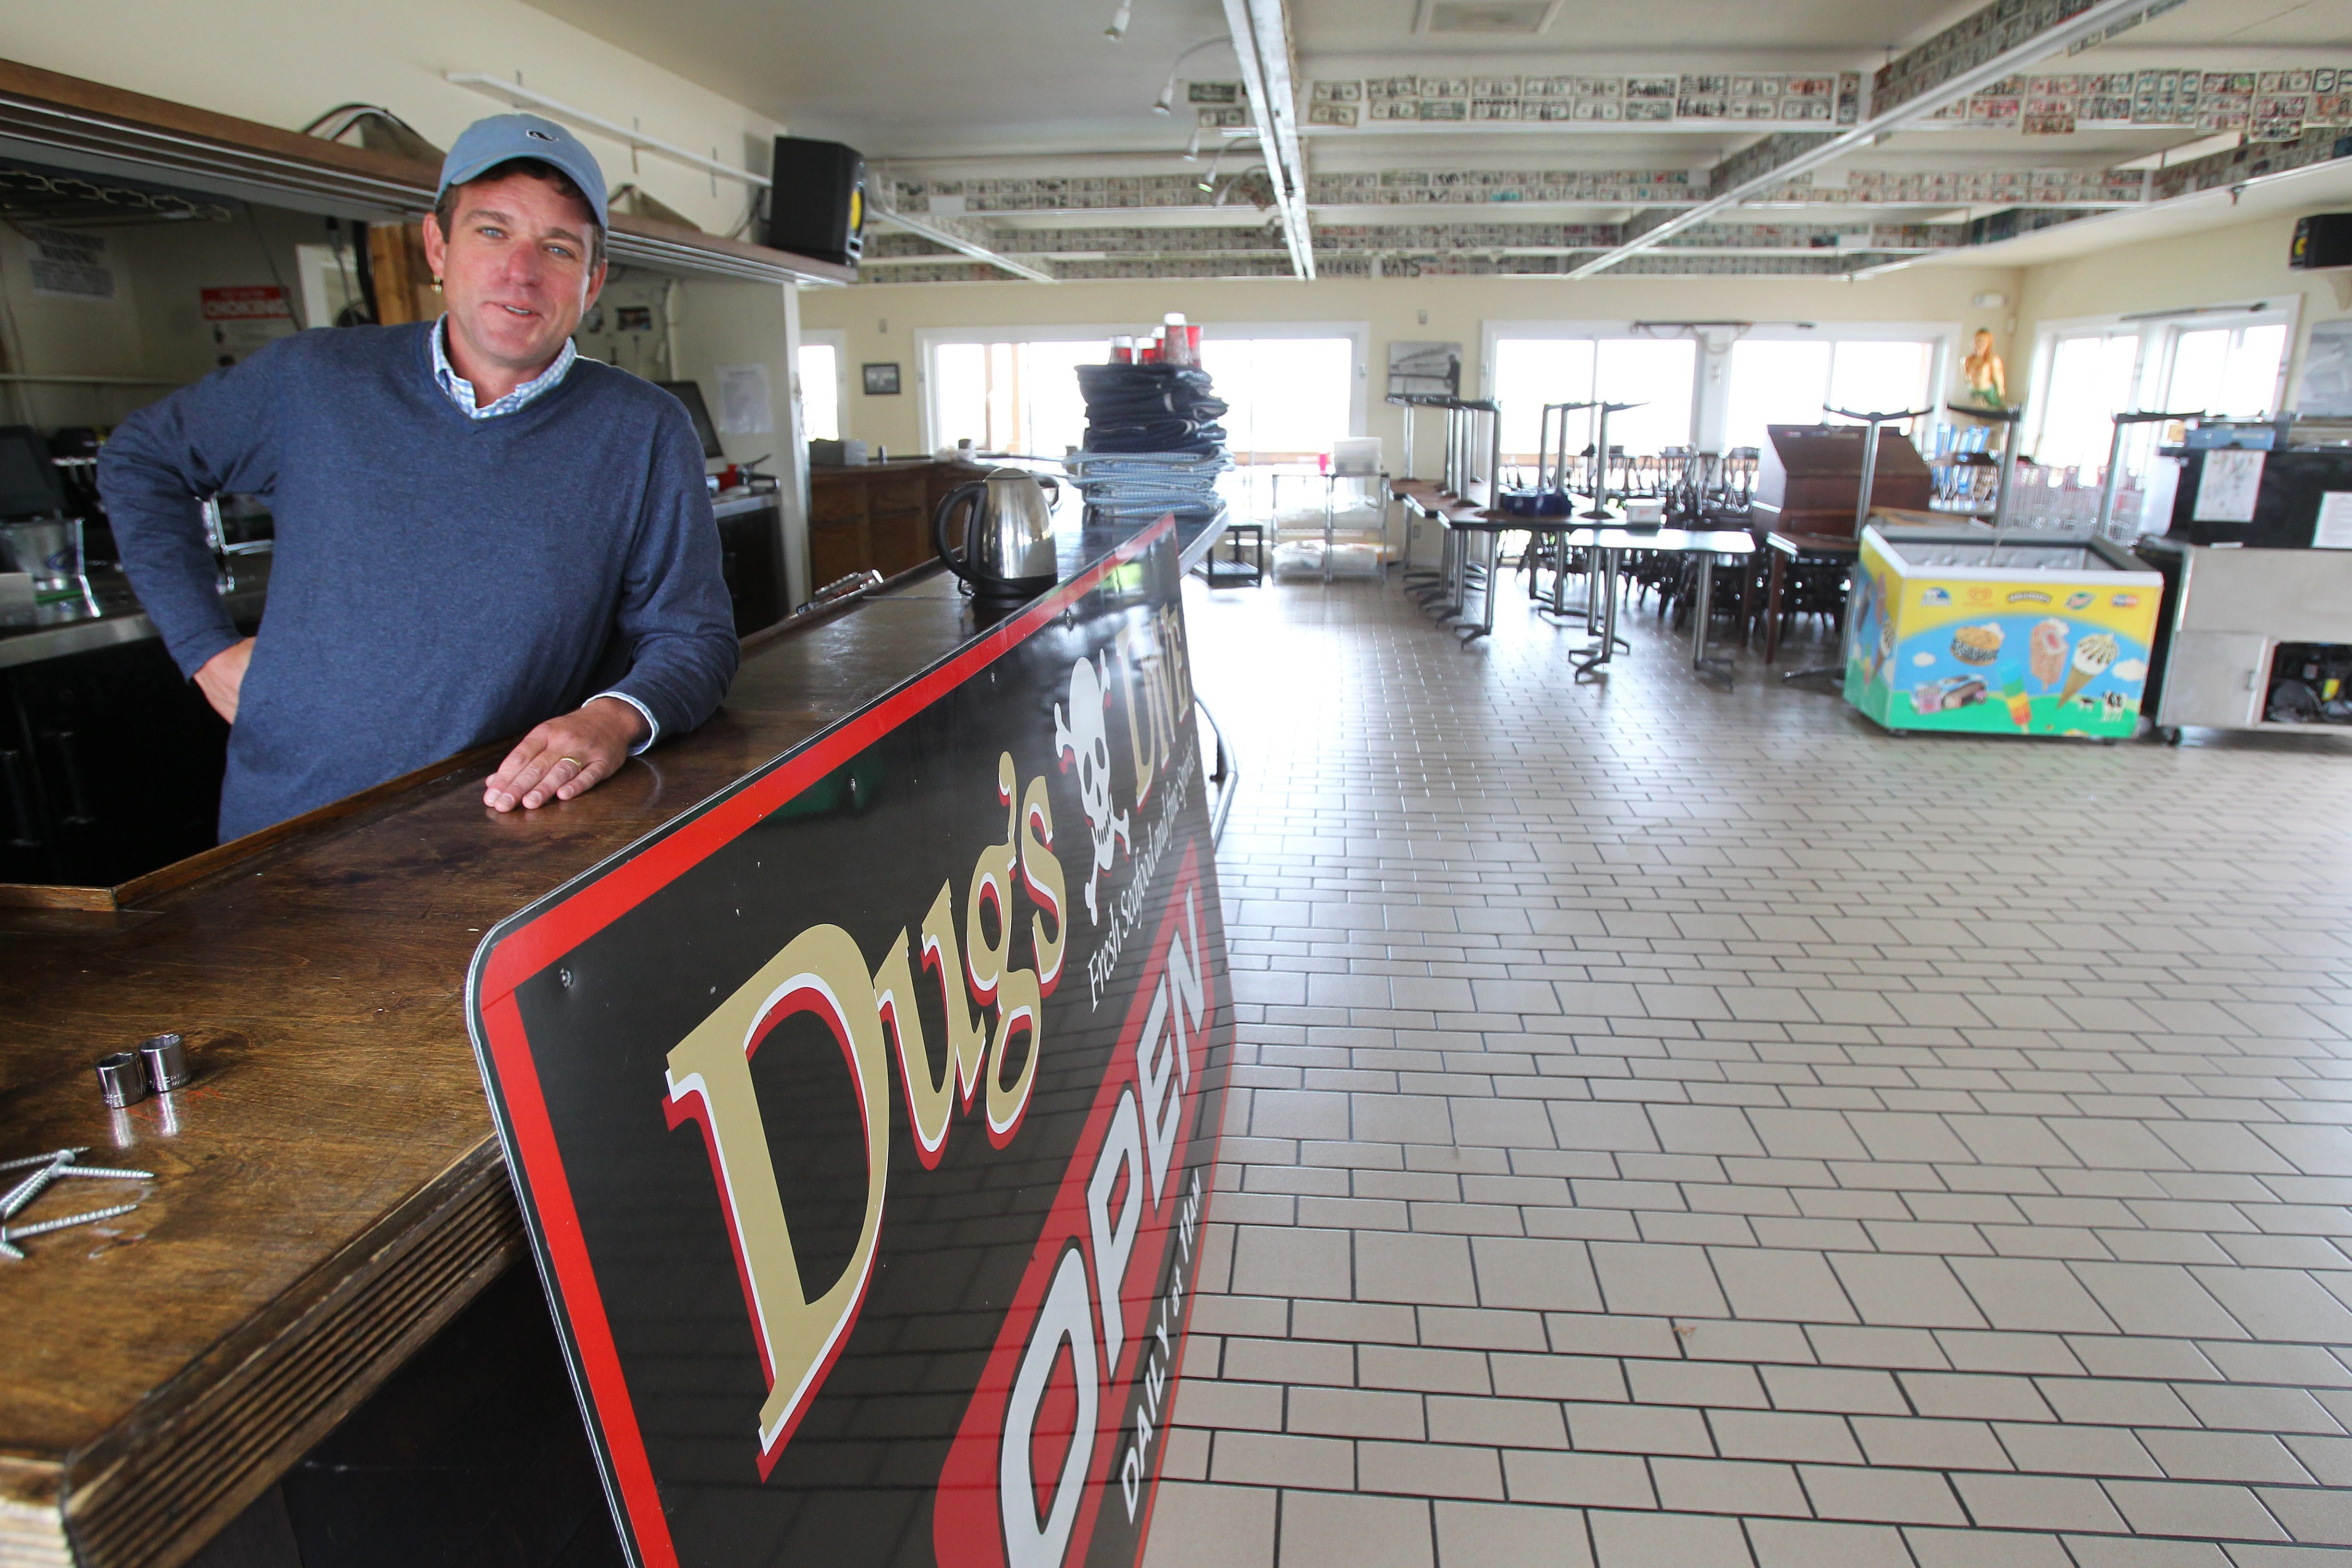 Dug's Dive owner Tucker Curtain stands at the bar of the restaurant at the Erie Basin Marina in Buffalo Thursday, October 17, 2013.  The restaurant is closed for the winter.   (Mark Mulville/Buffalo News)